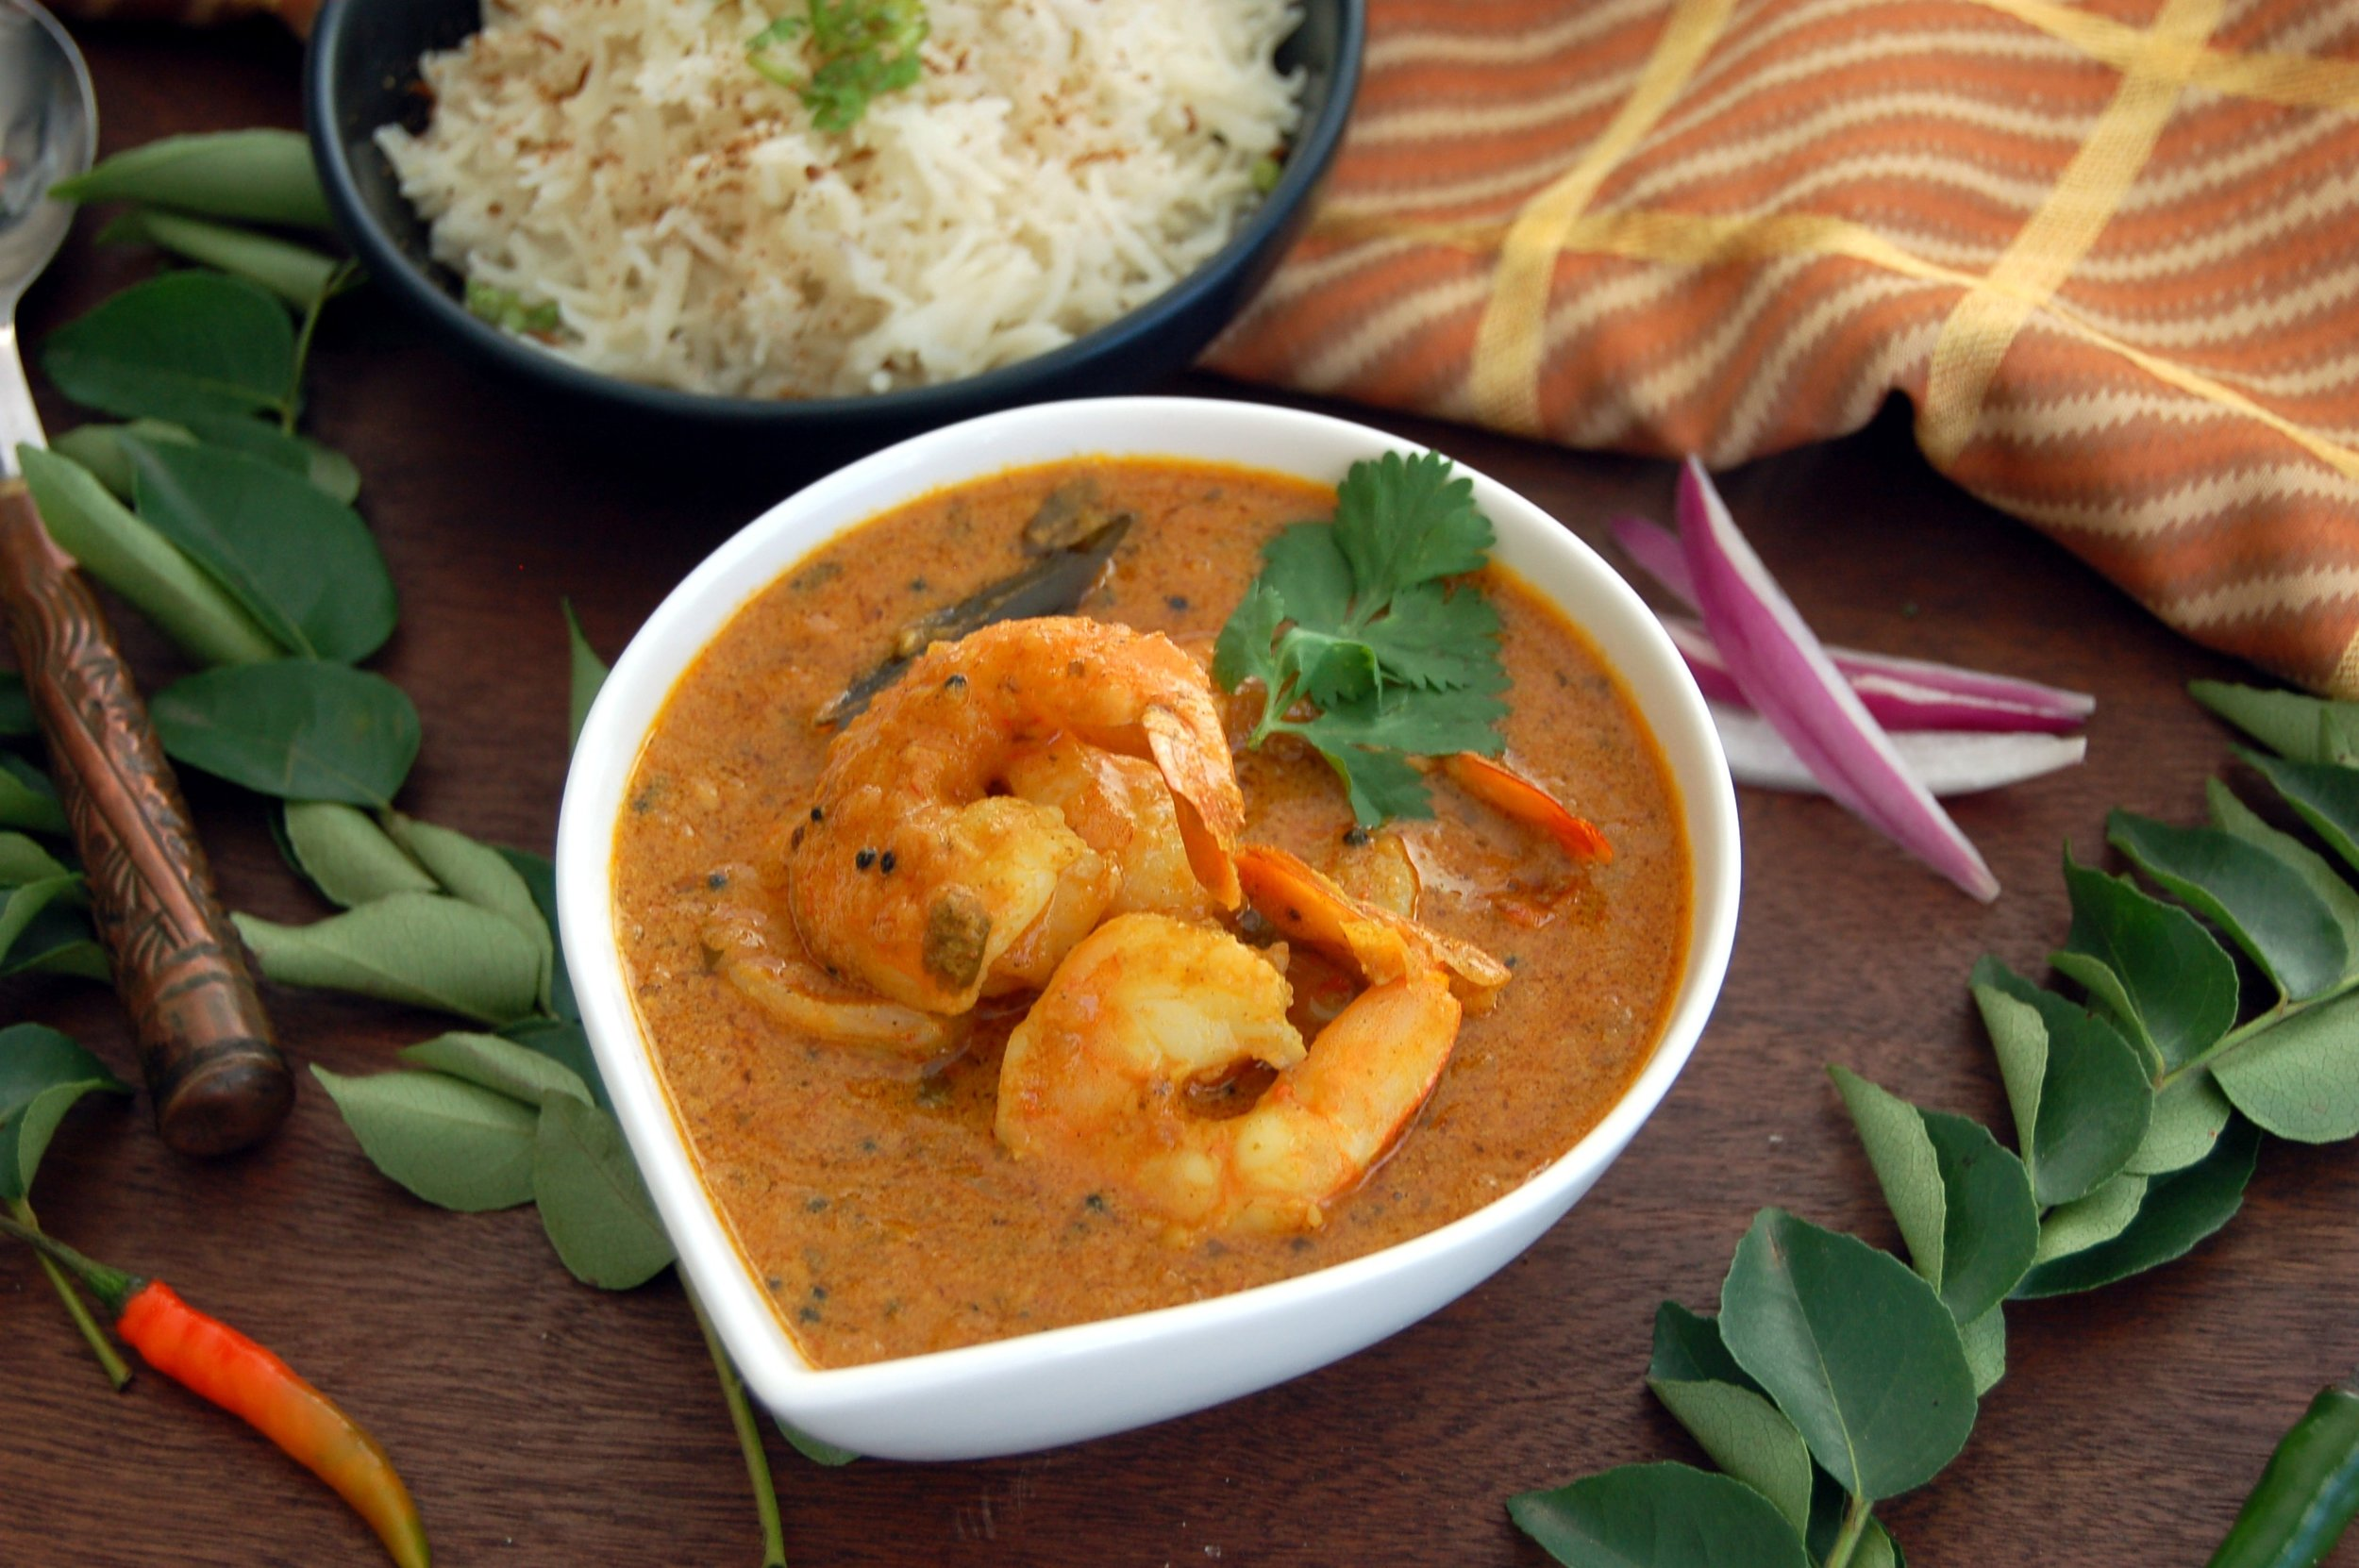 MADRAS COCONUT SHRIMP - {Made with Arvinda's Madras Masala}Make this decadent, mouthwatering coconut curry as it would be served on the coastal regions of India's South. Coconuts and curry leaves paired with Arvinda's Madras Masala makes this a peppery curry that will trump any seafood lovers most favourites list! Gluten-free and dairy-free.